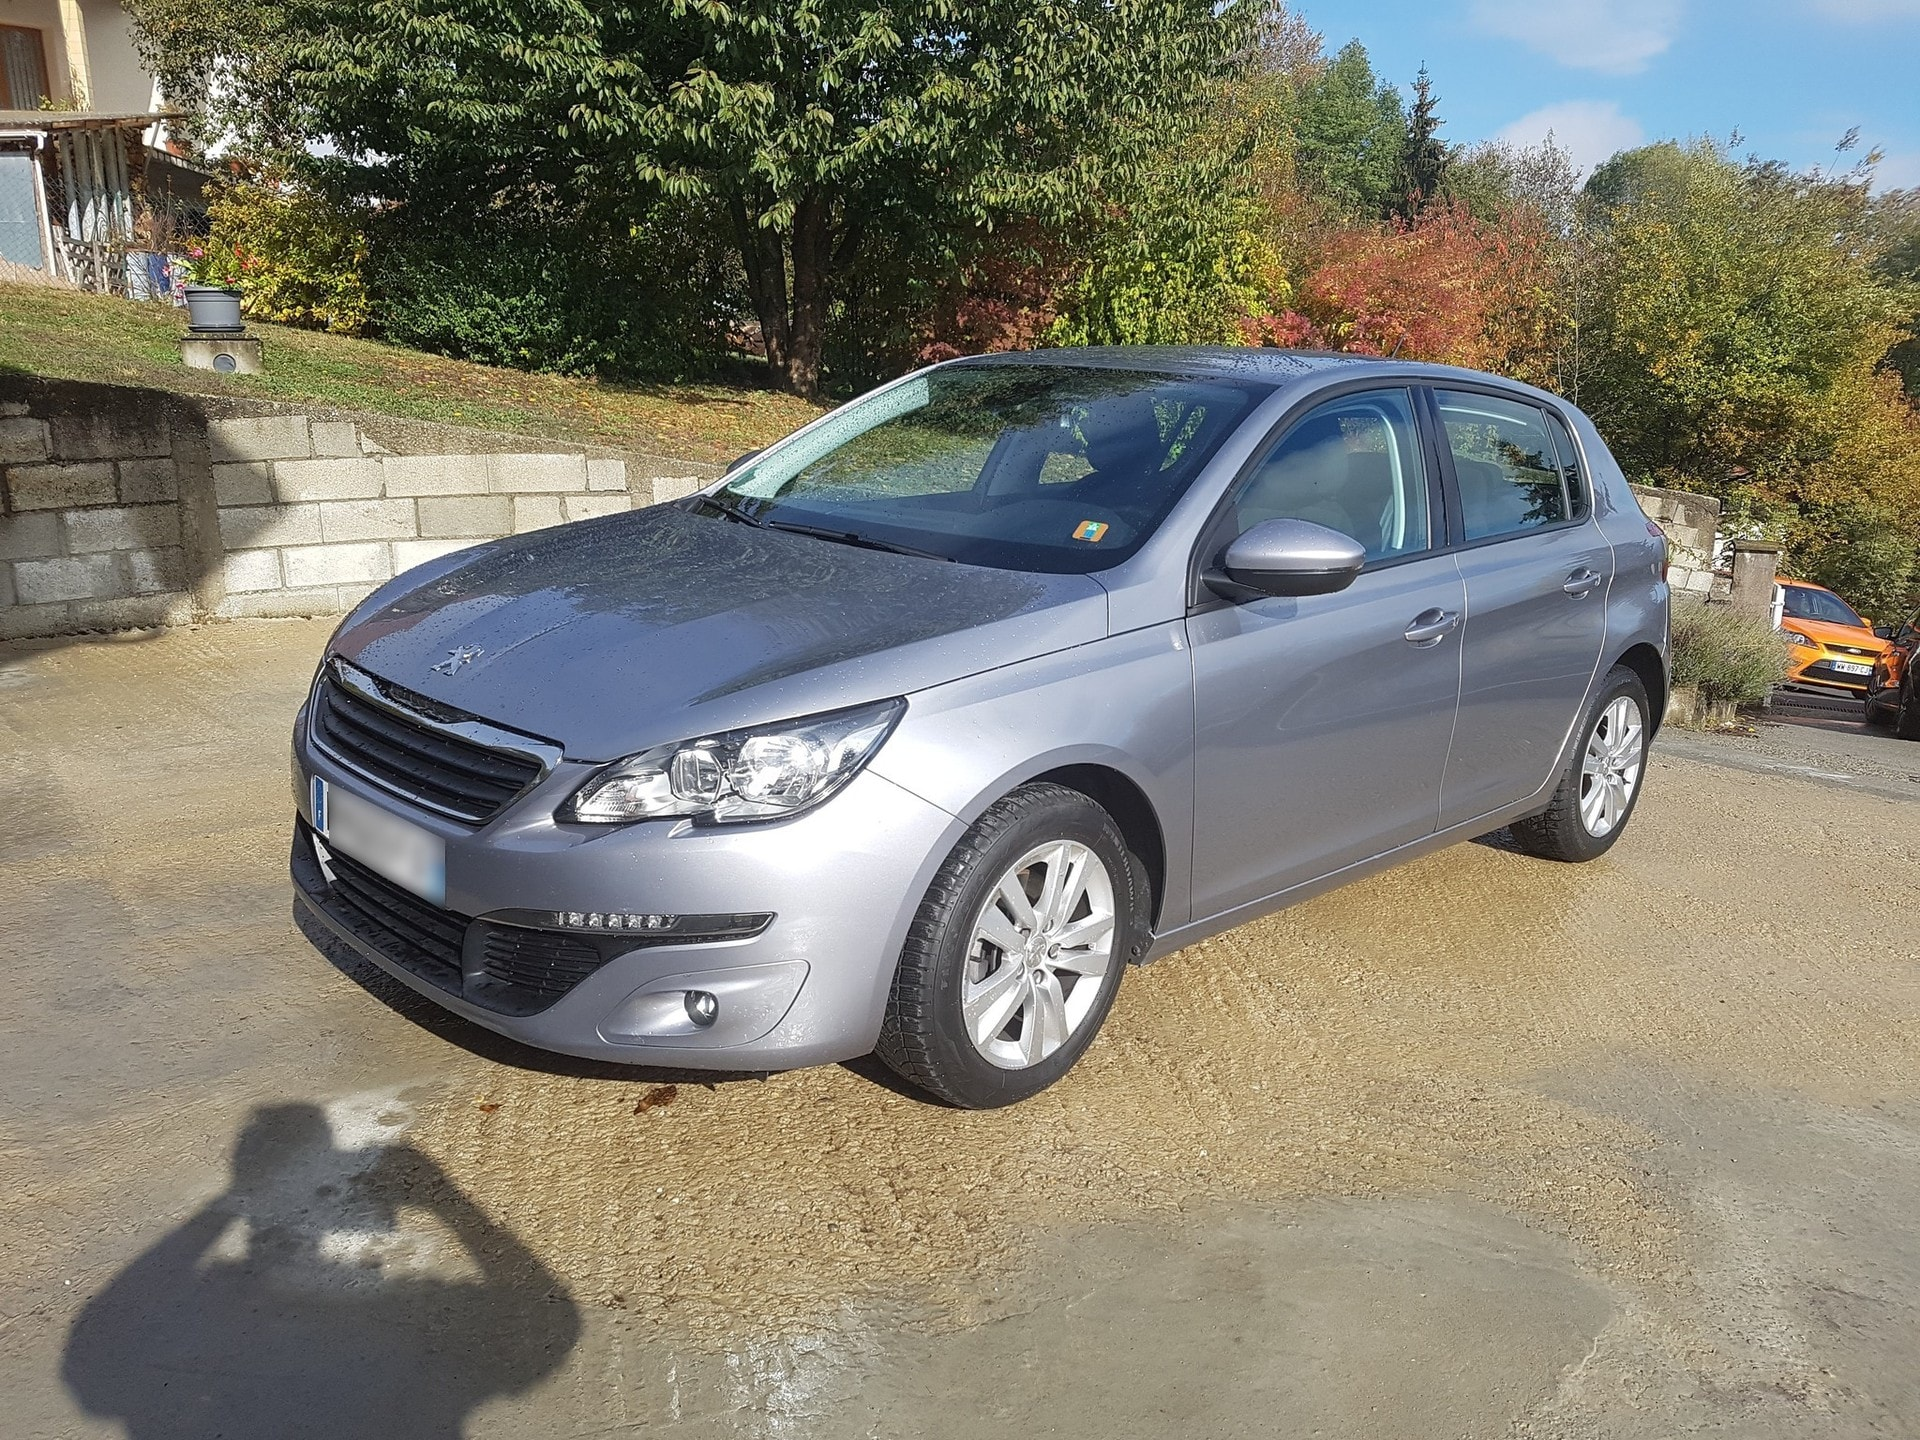 PEUGEOT 308 1.6 BLUEHDI 120 ALLURE START-STOP - Carverntura